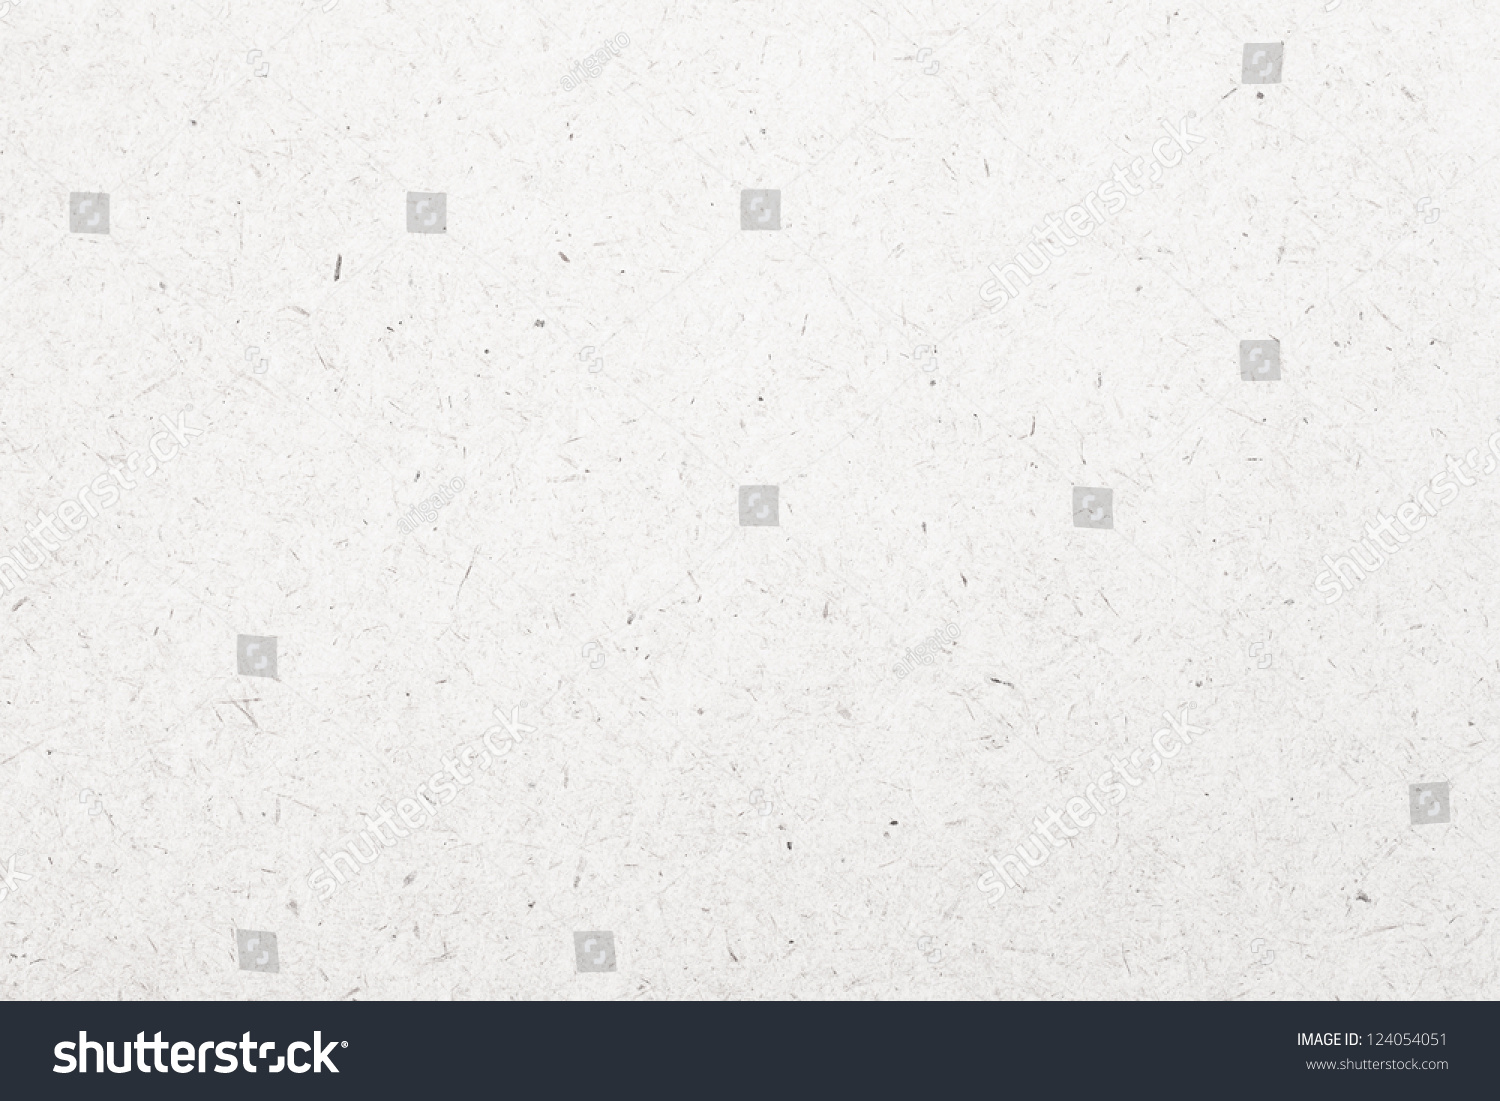 White Paper Cardboard Texture Pattern Stock Photo ...